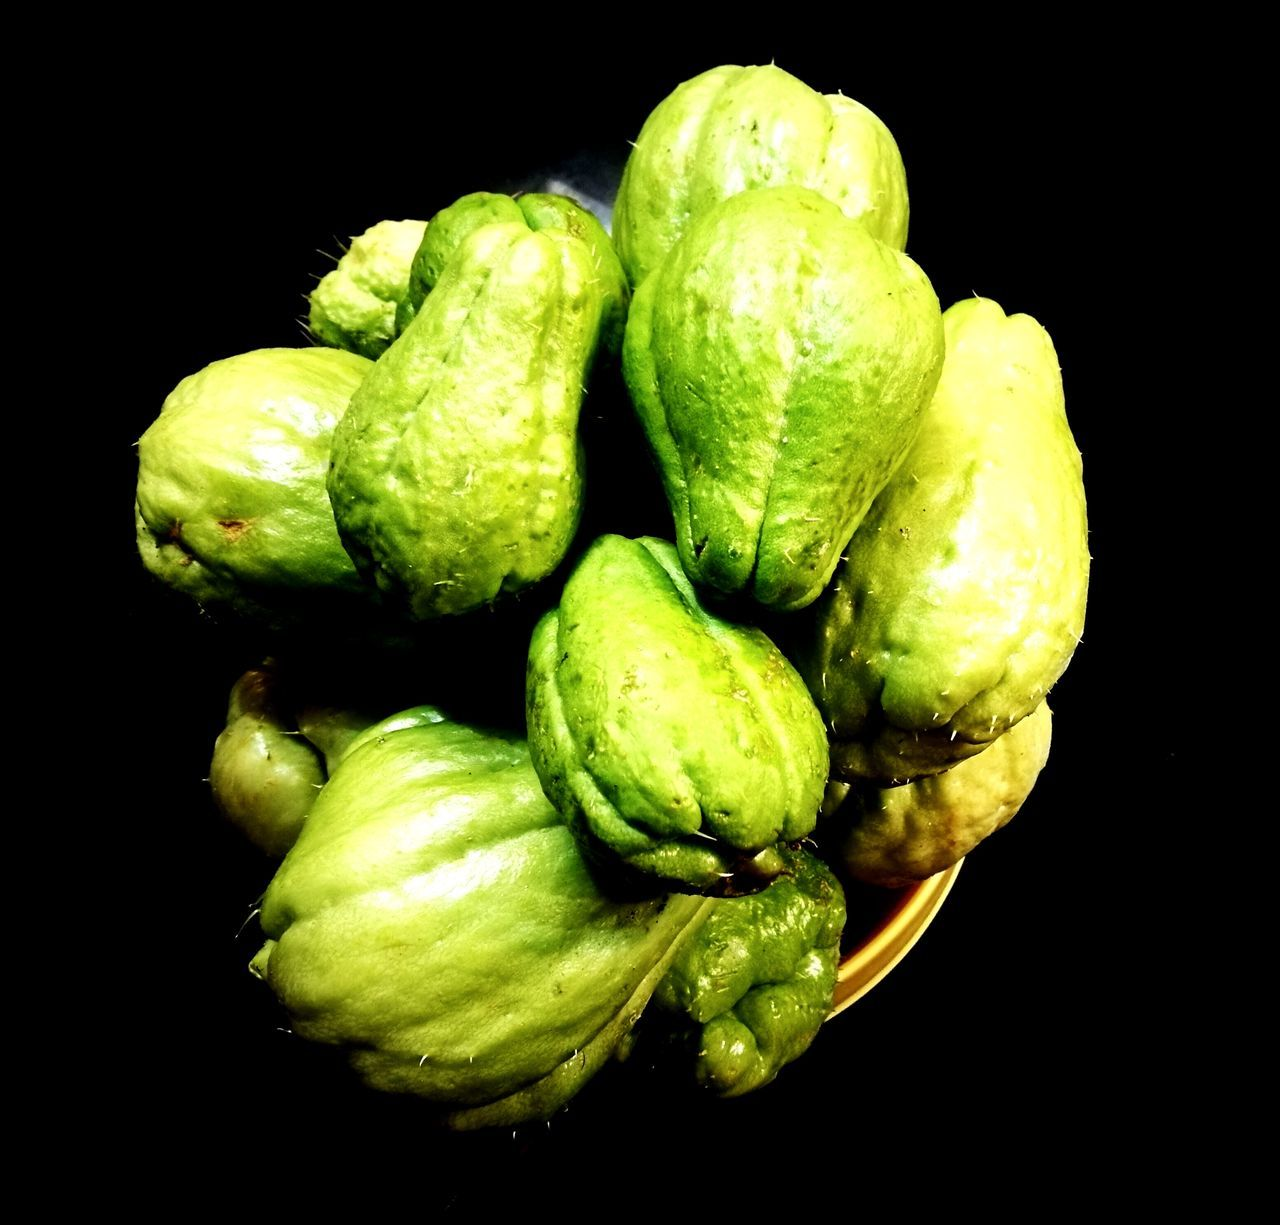 black background, studio shot, food, green color, vegetable, food and drink, healthy eating, freshness, no people, close-up, brussels sprout, day